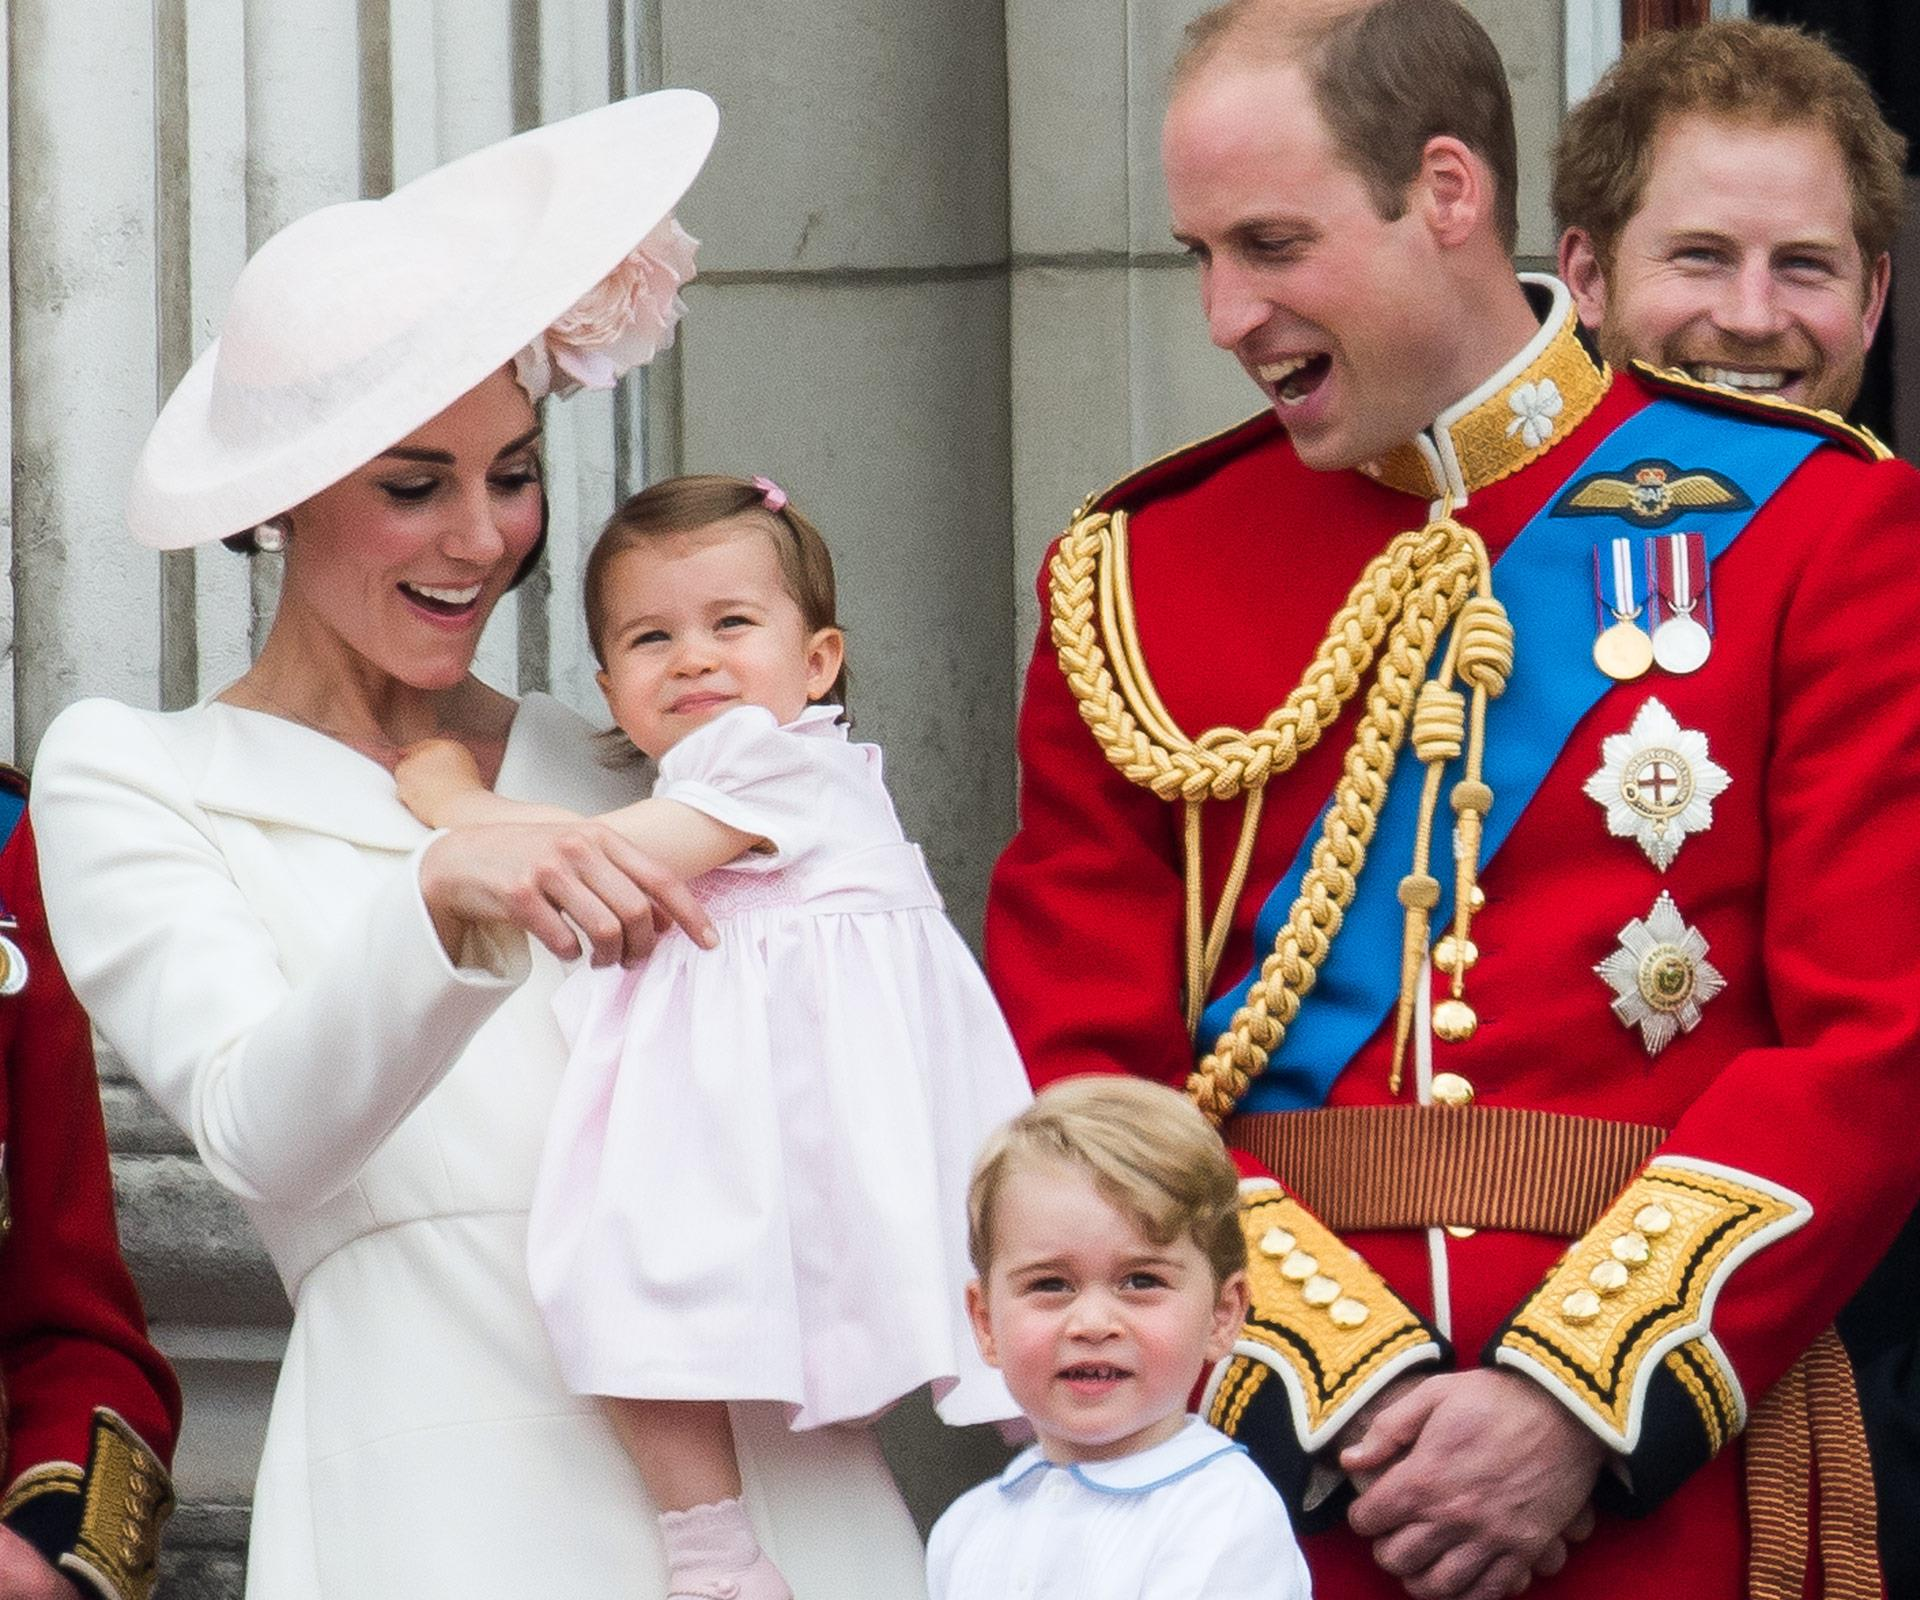 Seeing the dad in action at Trooping the colour melted hearts across all the lands